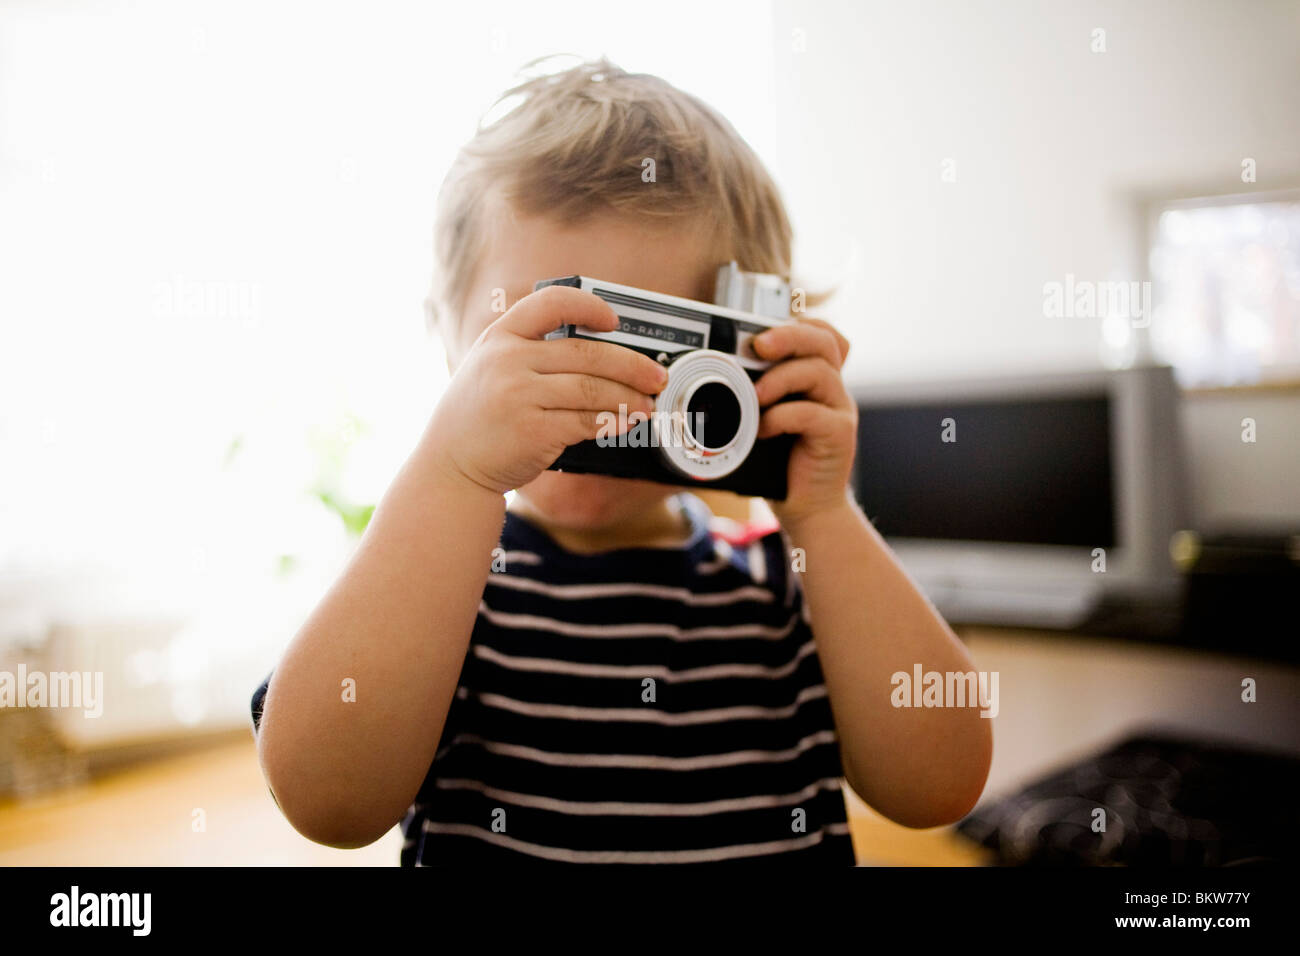 Child with camera - Stock Image